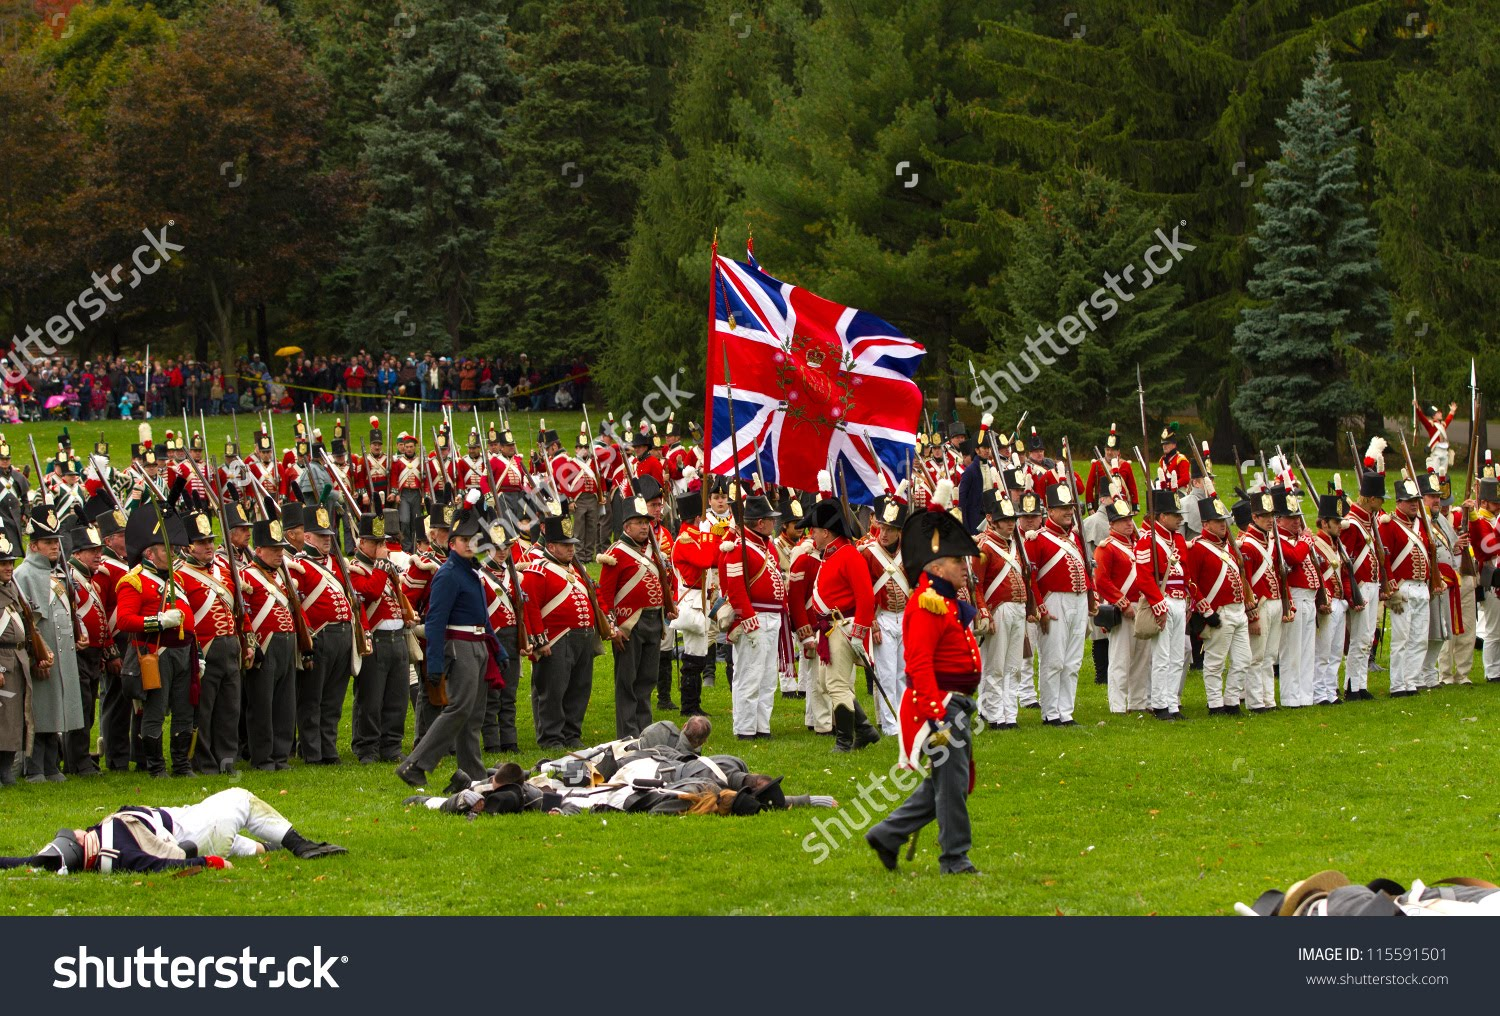 RELIVING HISTORIC SKIRMISH ON CANADIAN SOIL.